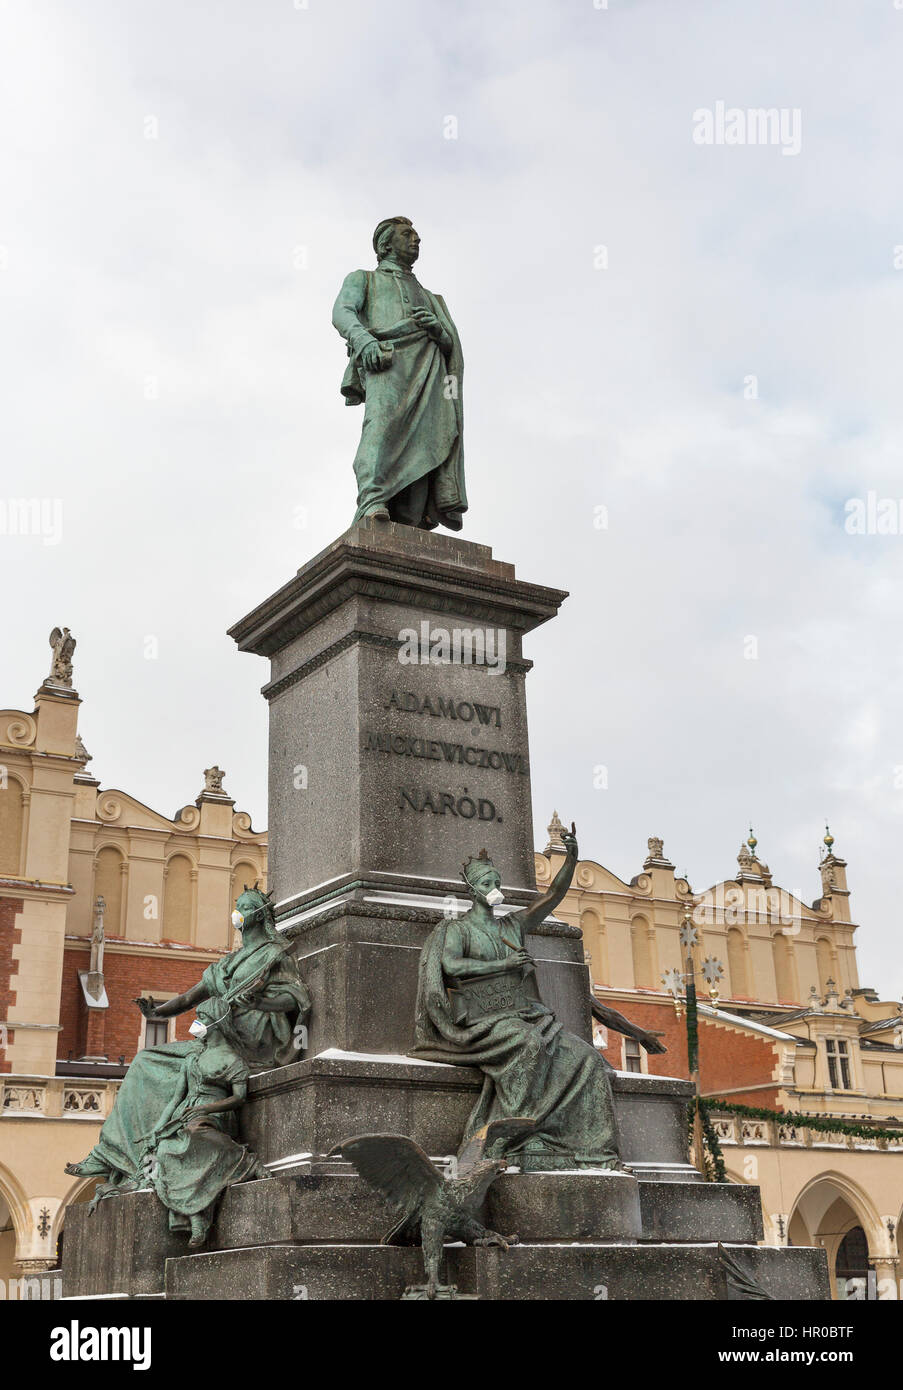 Adam Mickiewicz, greatest Polish Romantic poet of the 19th century, monument in Krakow, Poland. It is a favourite Stock Photo